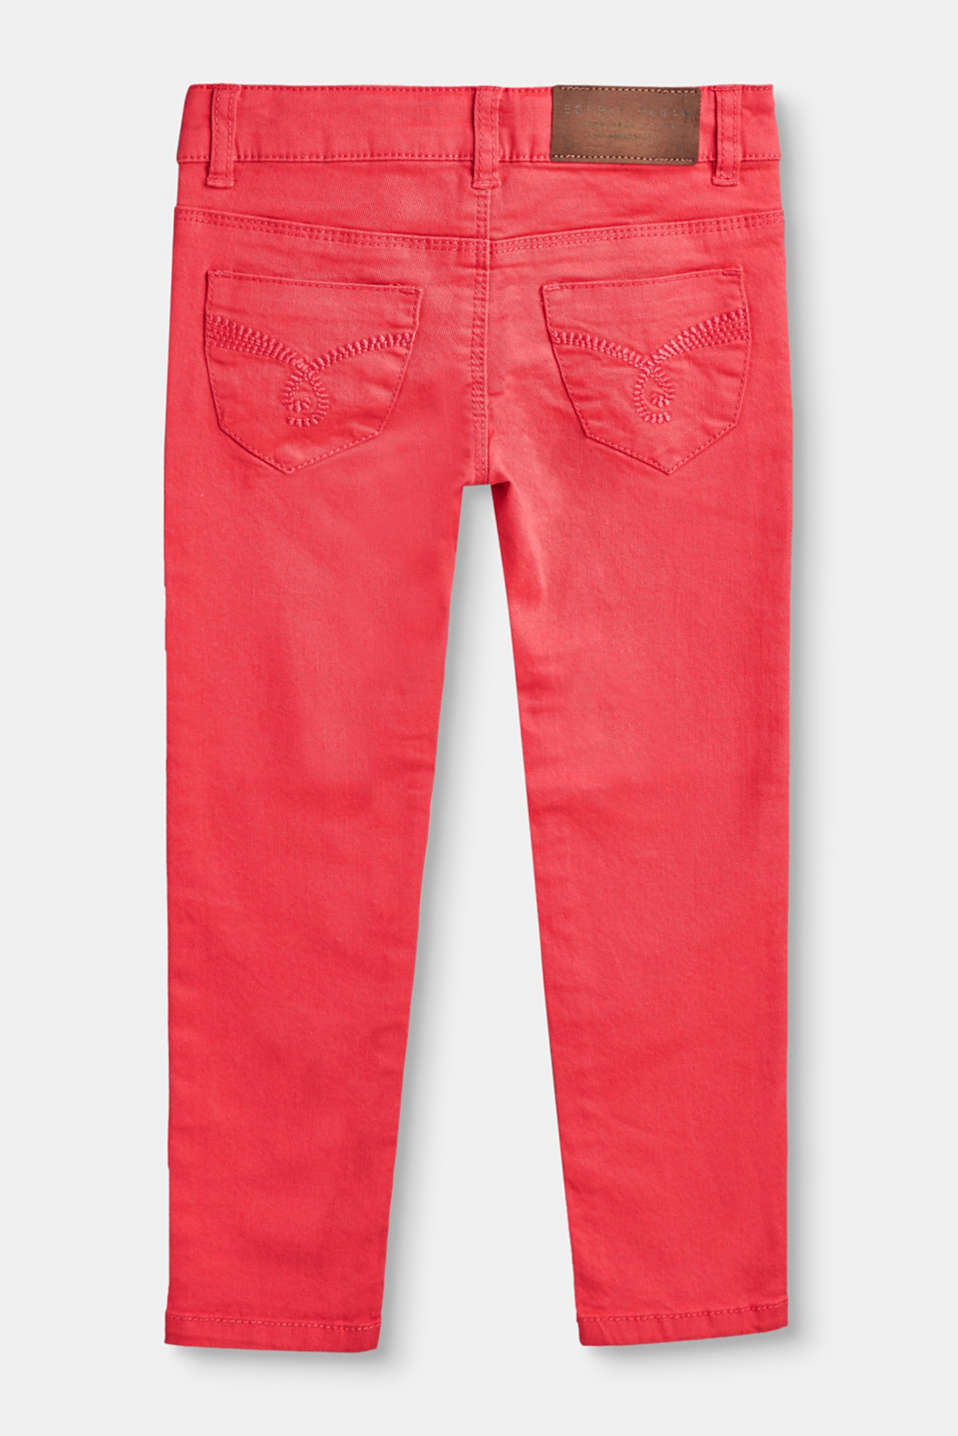 Coloured stretch jeans with adjustable waist